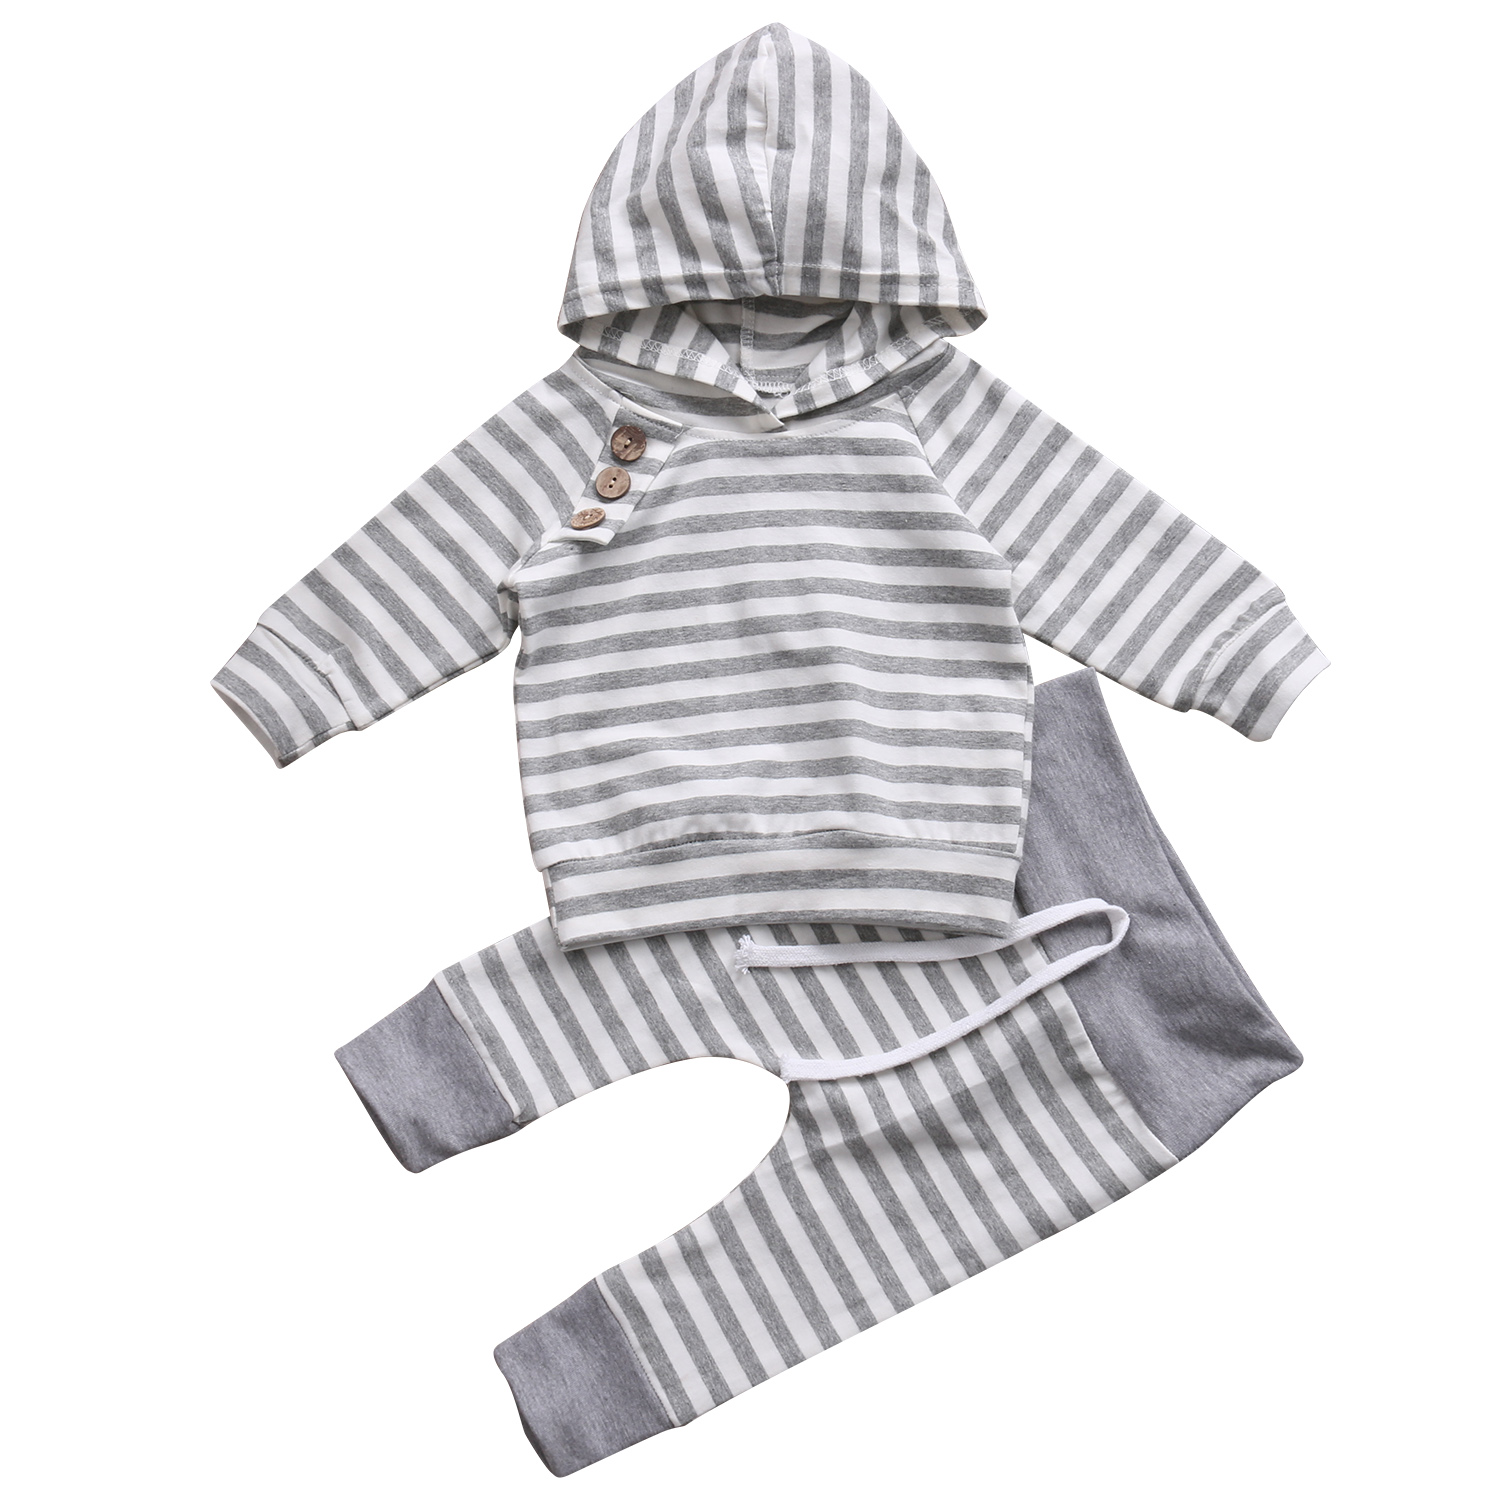 Newborn Kids Toddler Baby Boy Girl Outfits Hooded Long Sleeve Striped Tops T-shirt+Pants Clothes Set